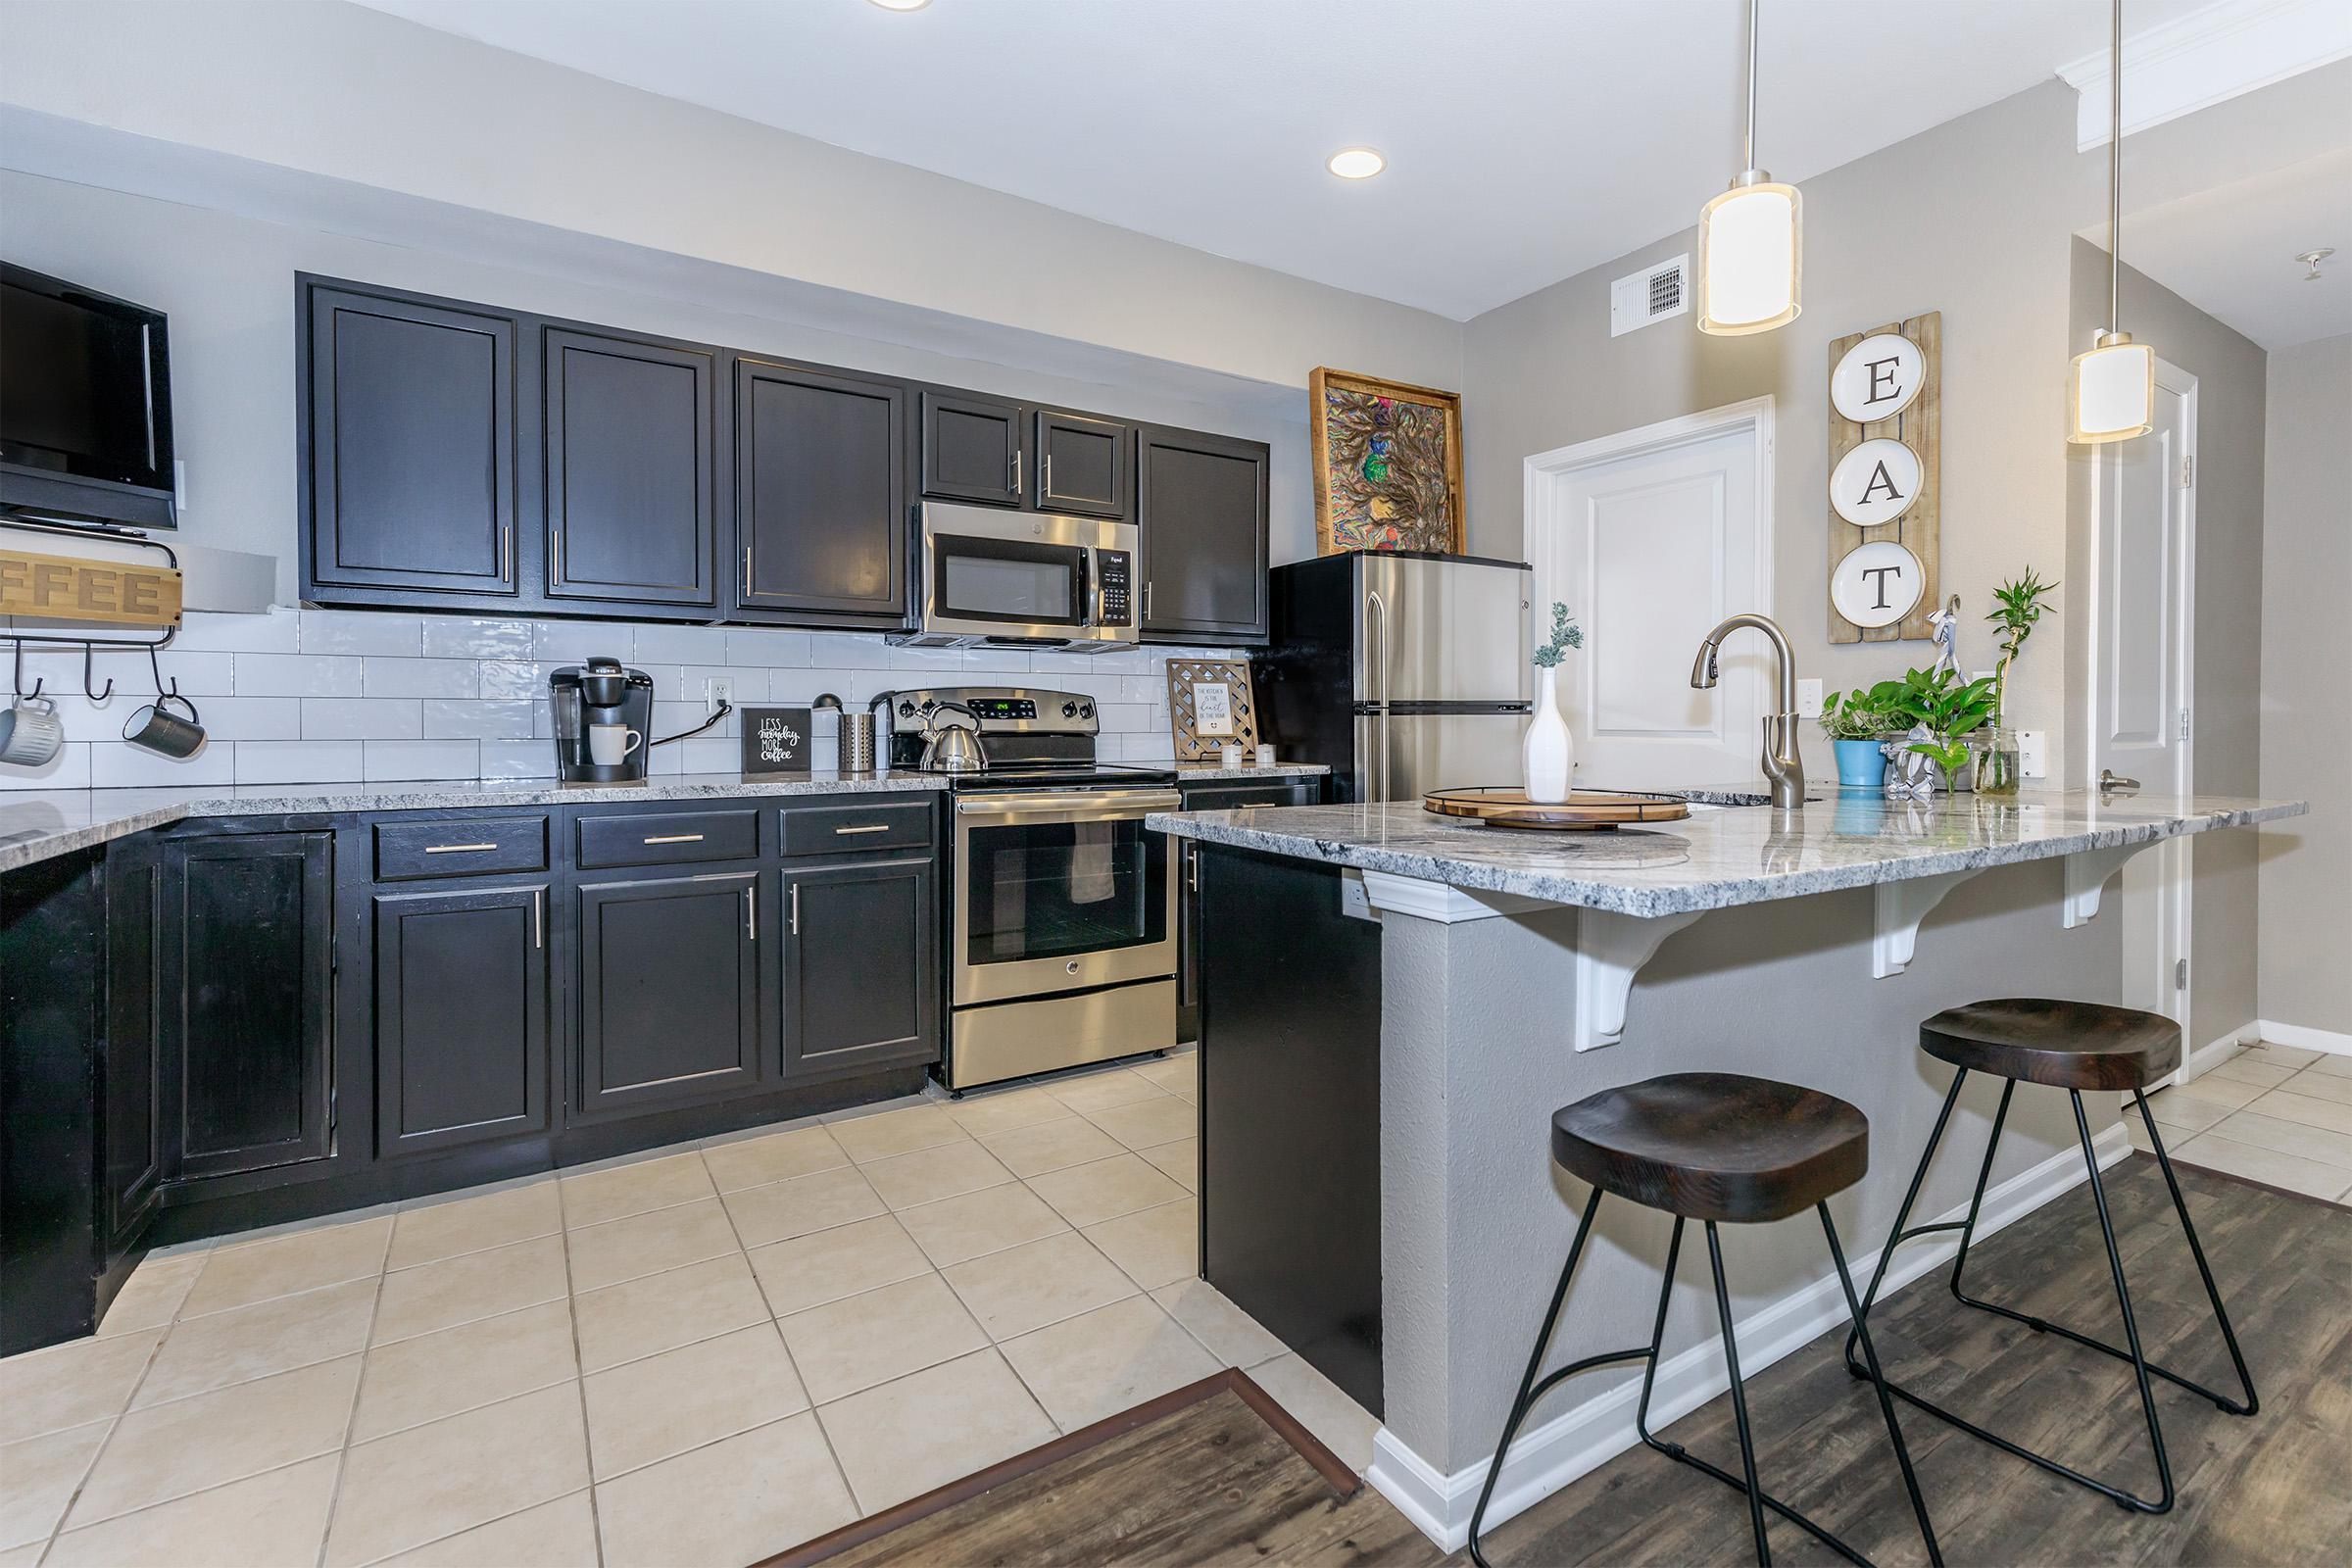 a kitchen with a sink and a chair in a room